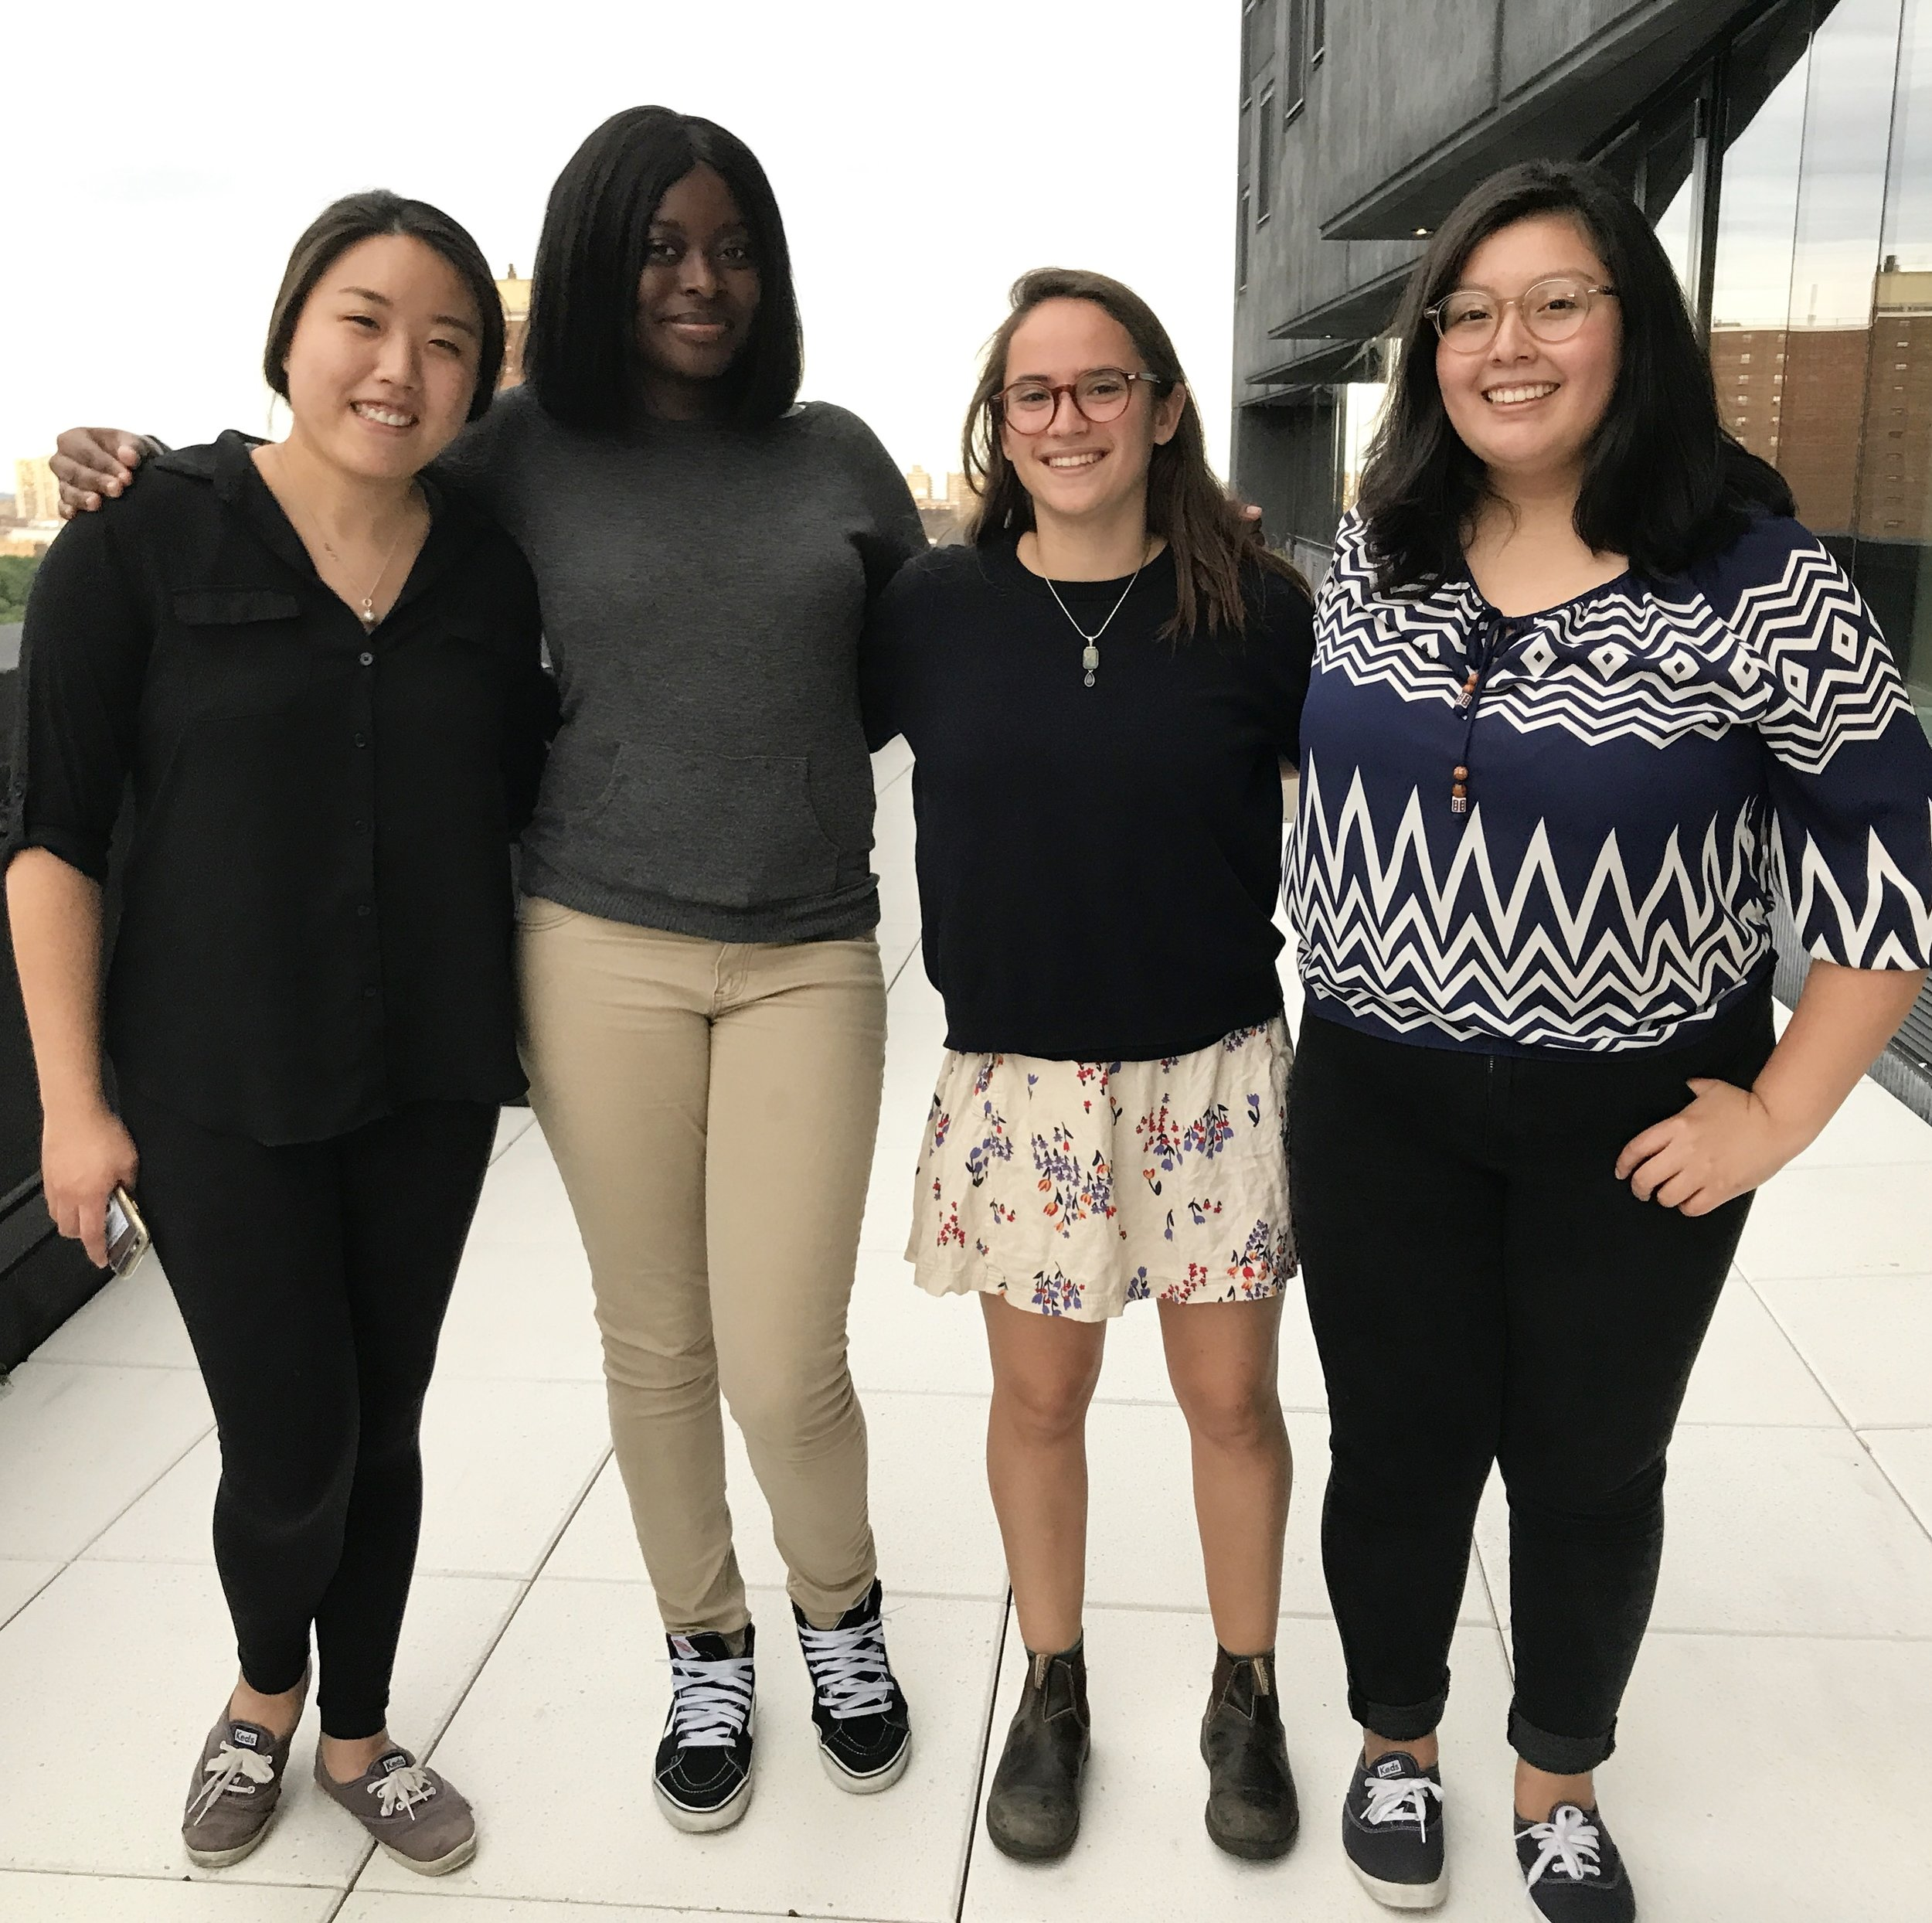 From left to right: Lily Kim, Tiranke Kande, Sara Caplan, and Madeline Bustos.